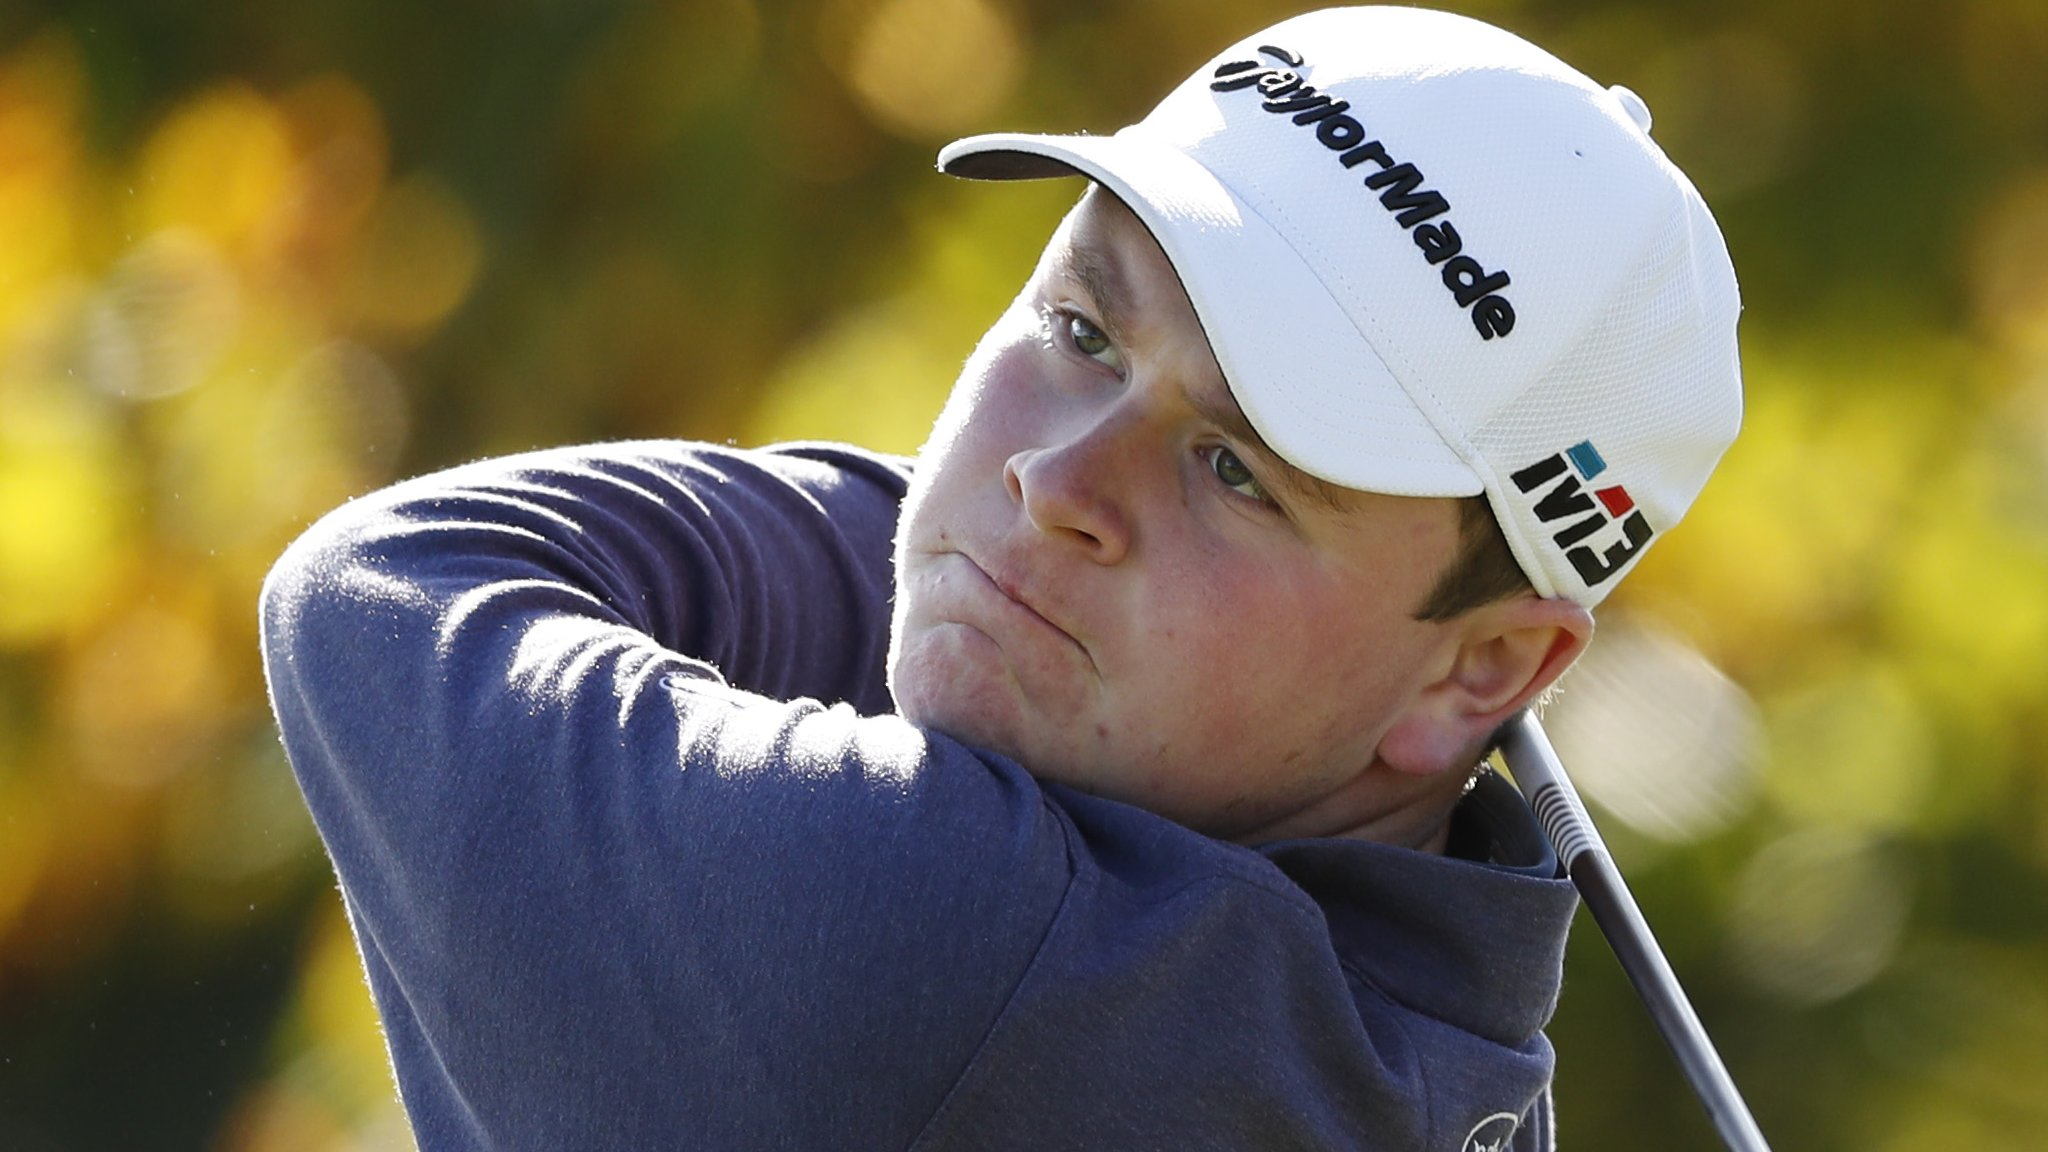 'My golf swing comes from shinty'